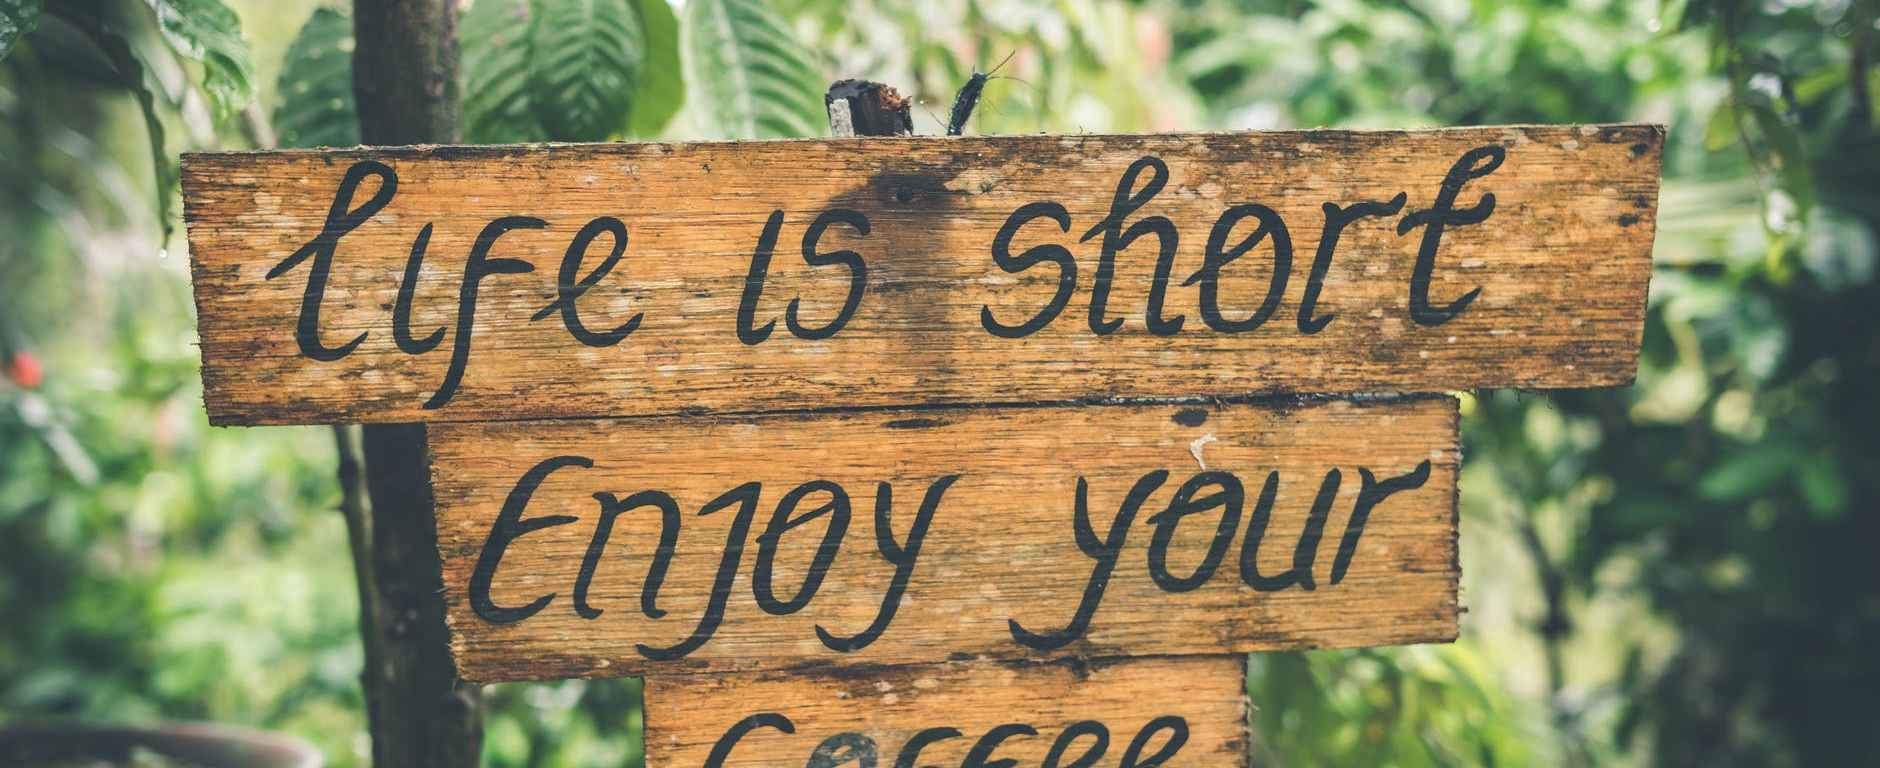 coffee quote wooden sign vegetation